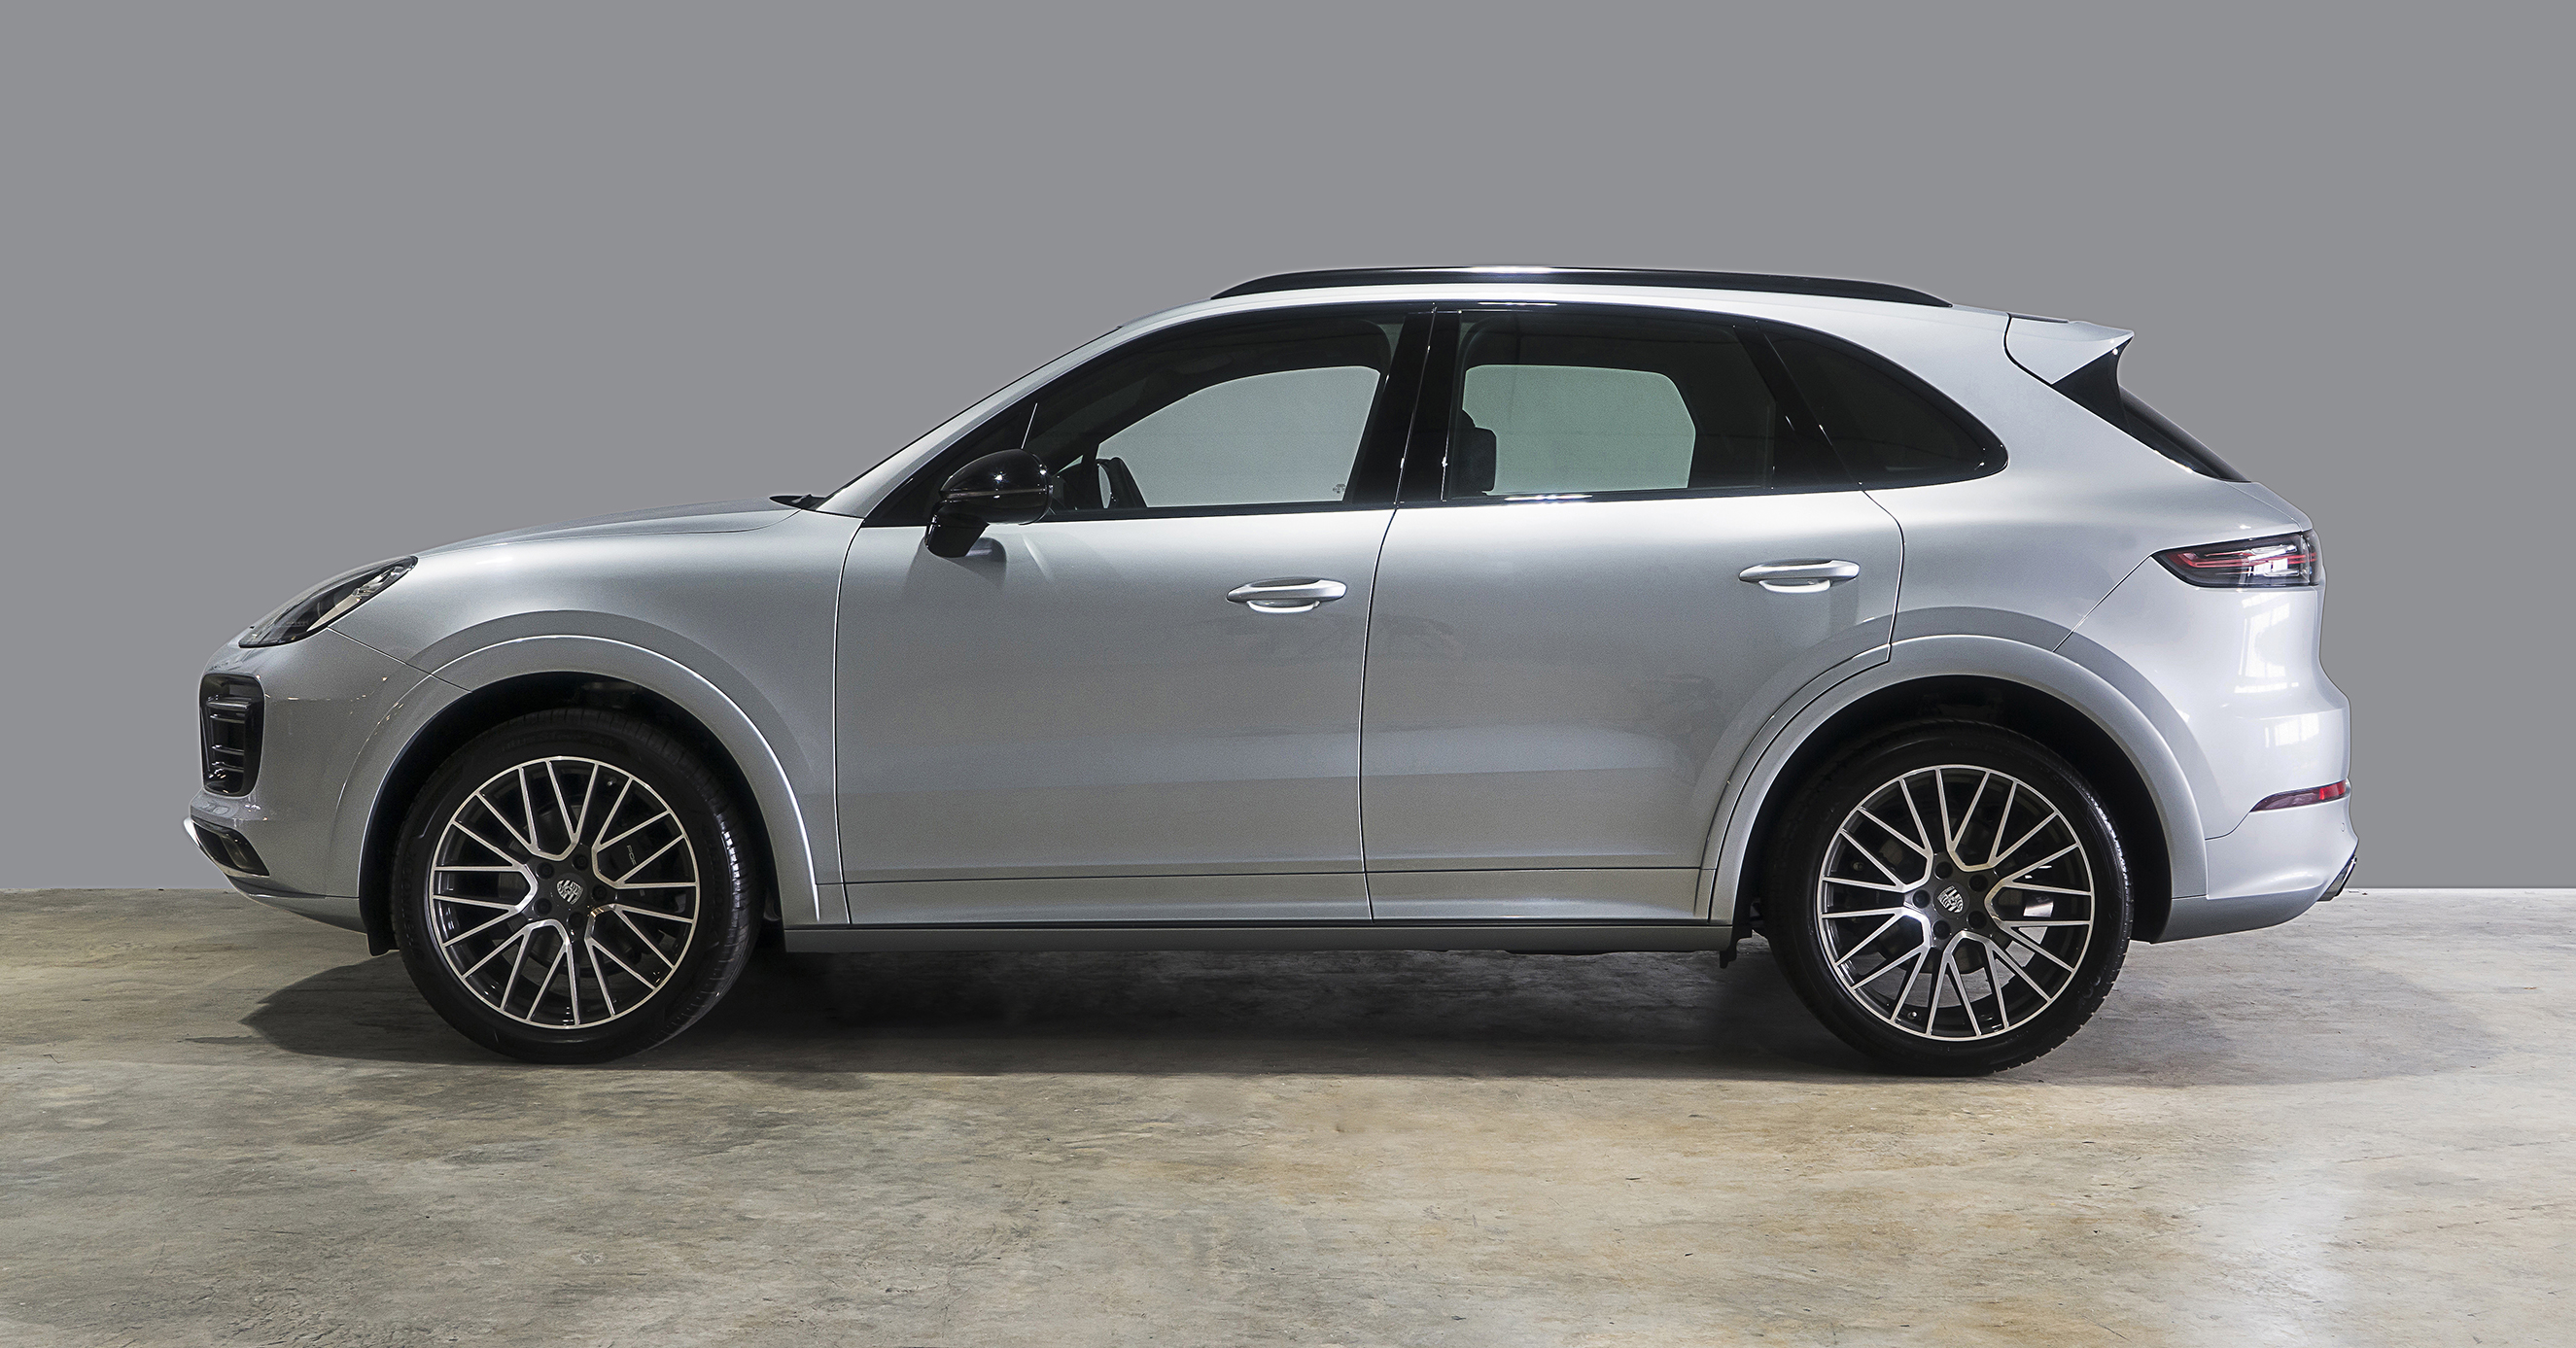 With the performance of a racecar and the capabilities of an SUV, the new Porsche Cayenne puts the fun in functionality, making it the epitome of unrivalled balance that one seeks in a car.